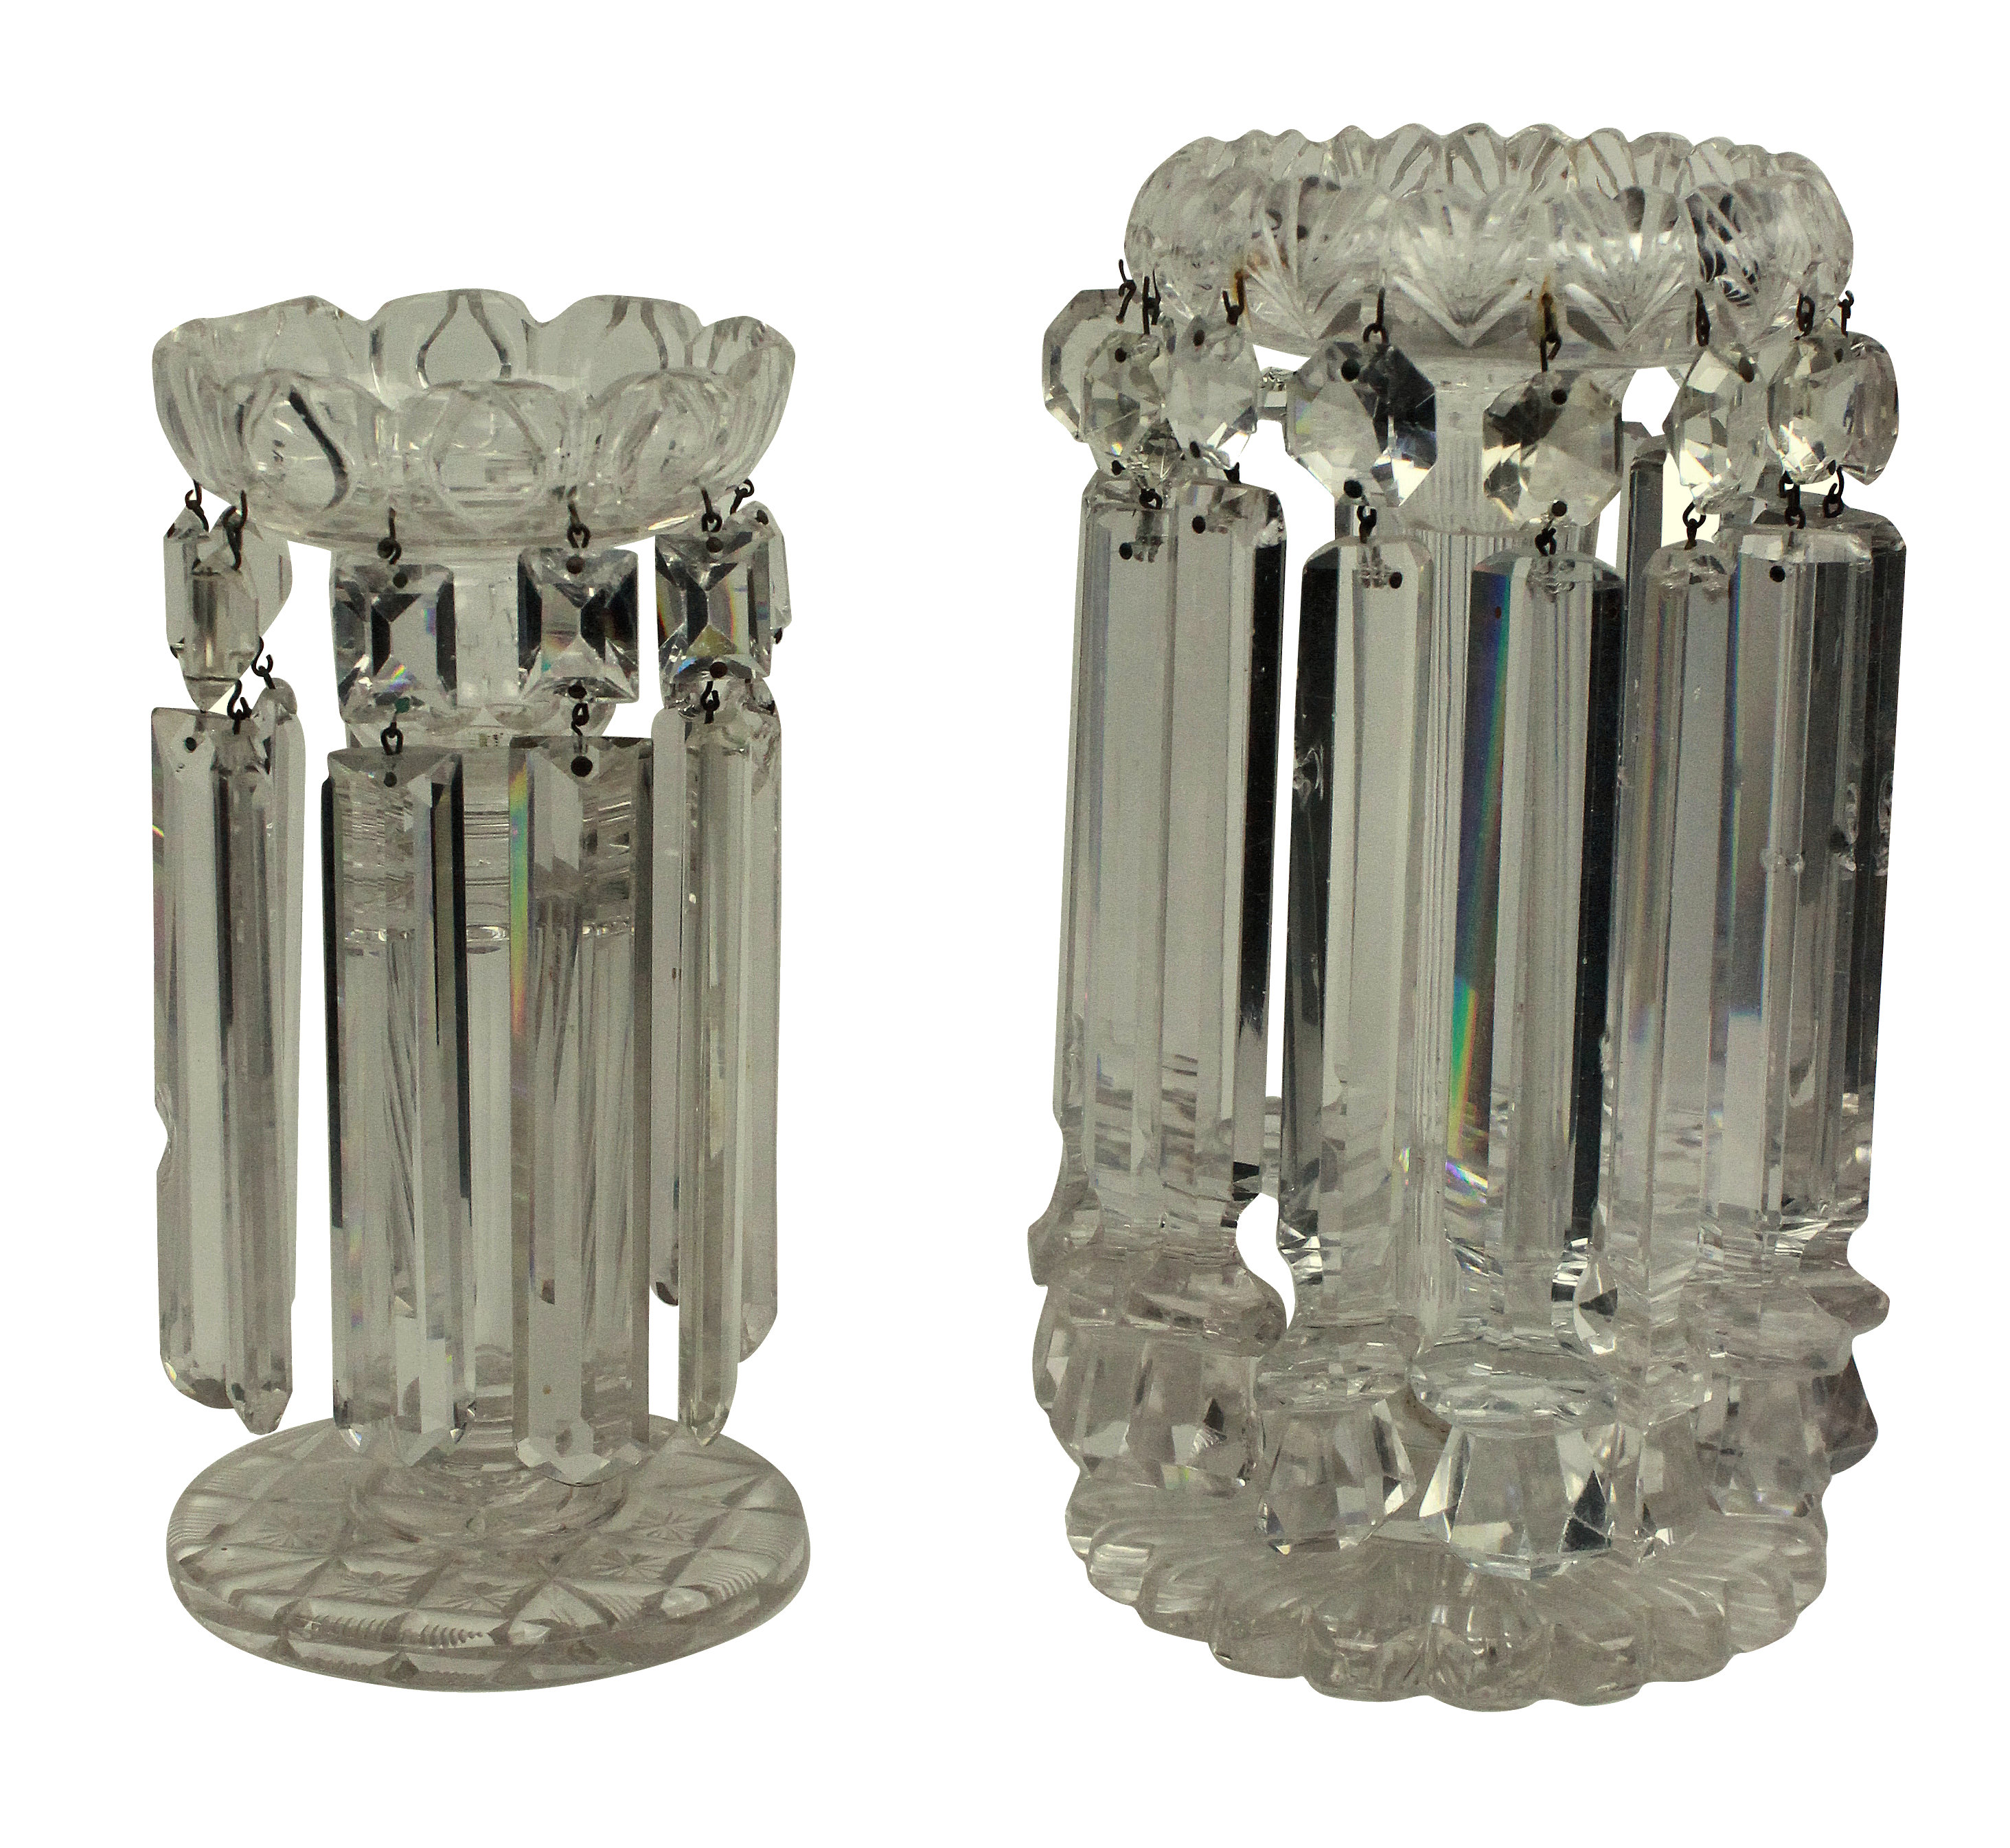 TWO EARLY XIX CENTURY CUT GLASS TABLE LUSTRES